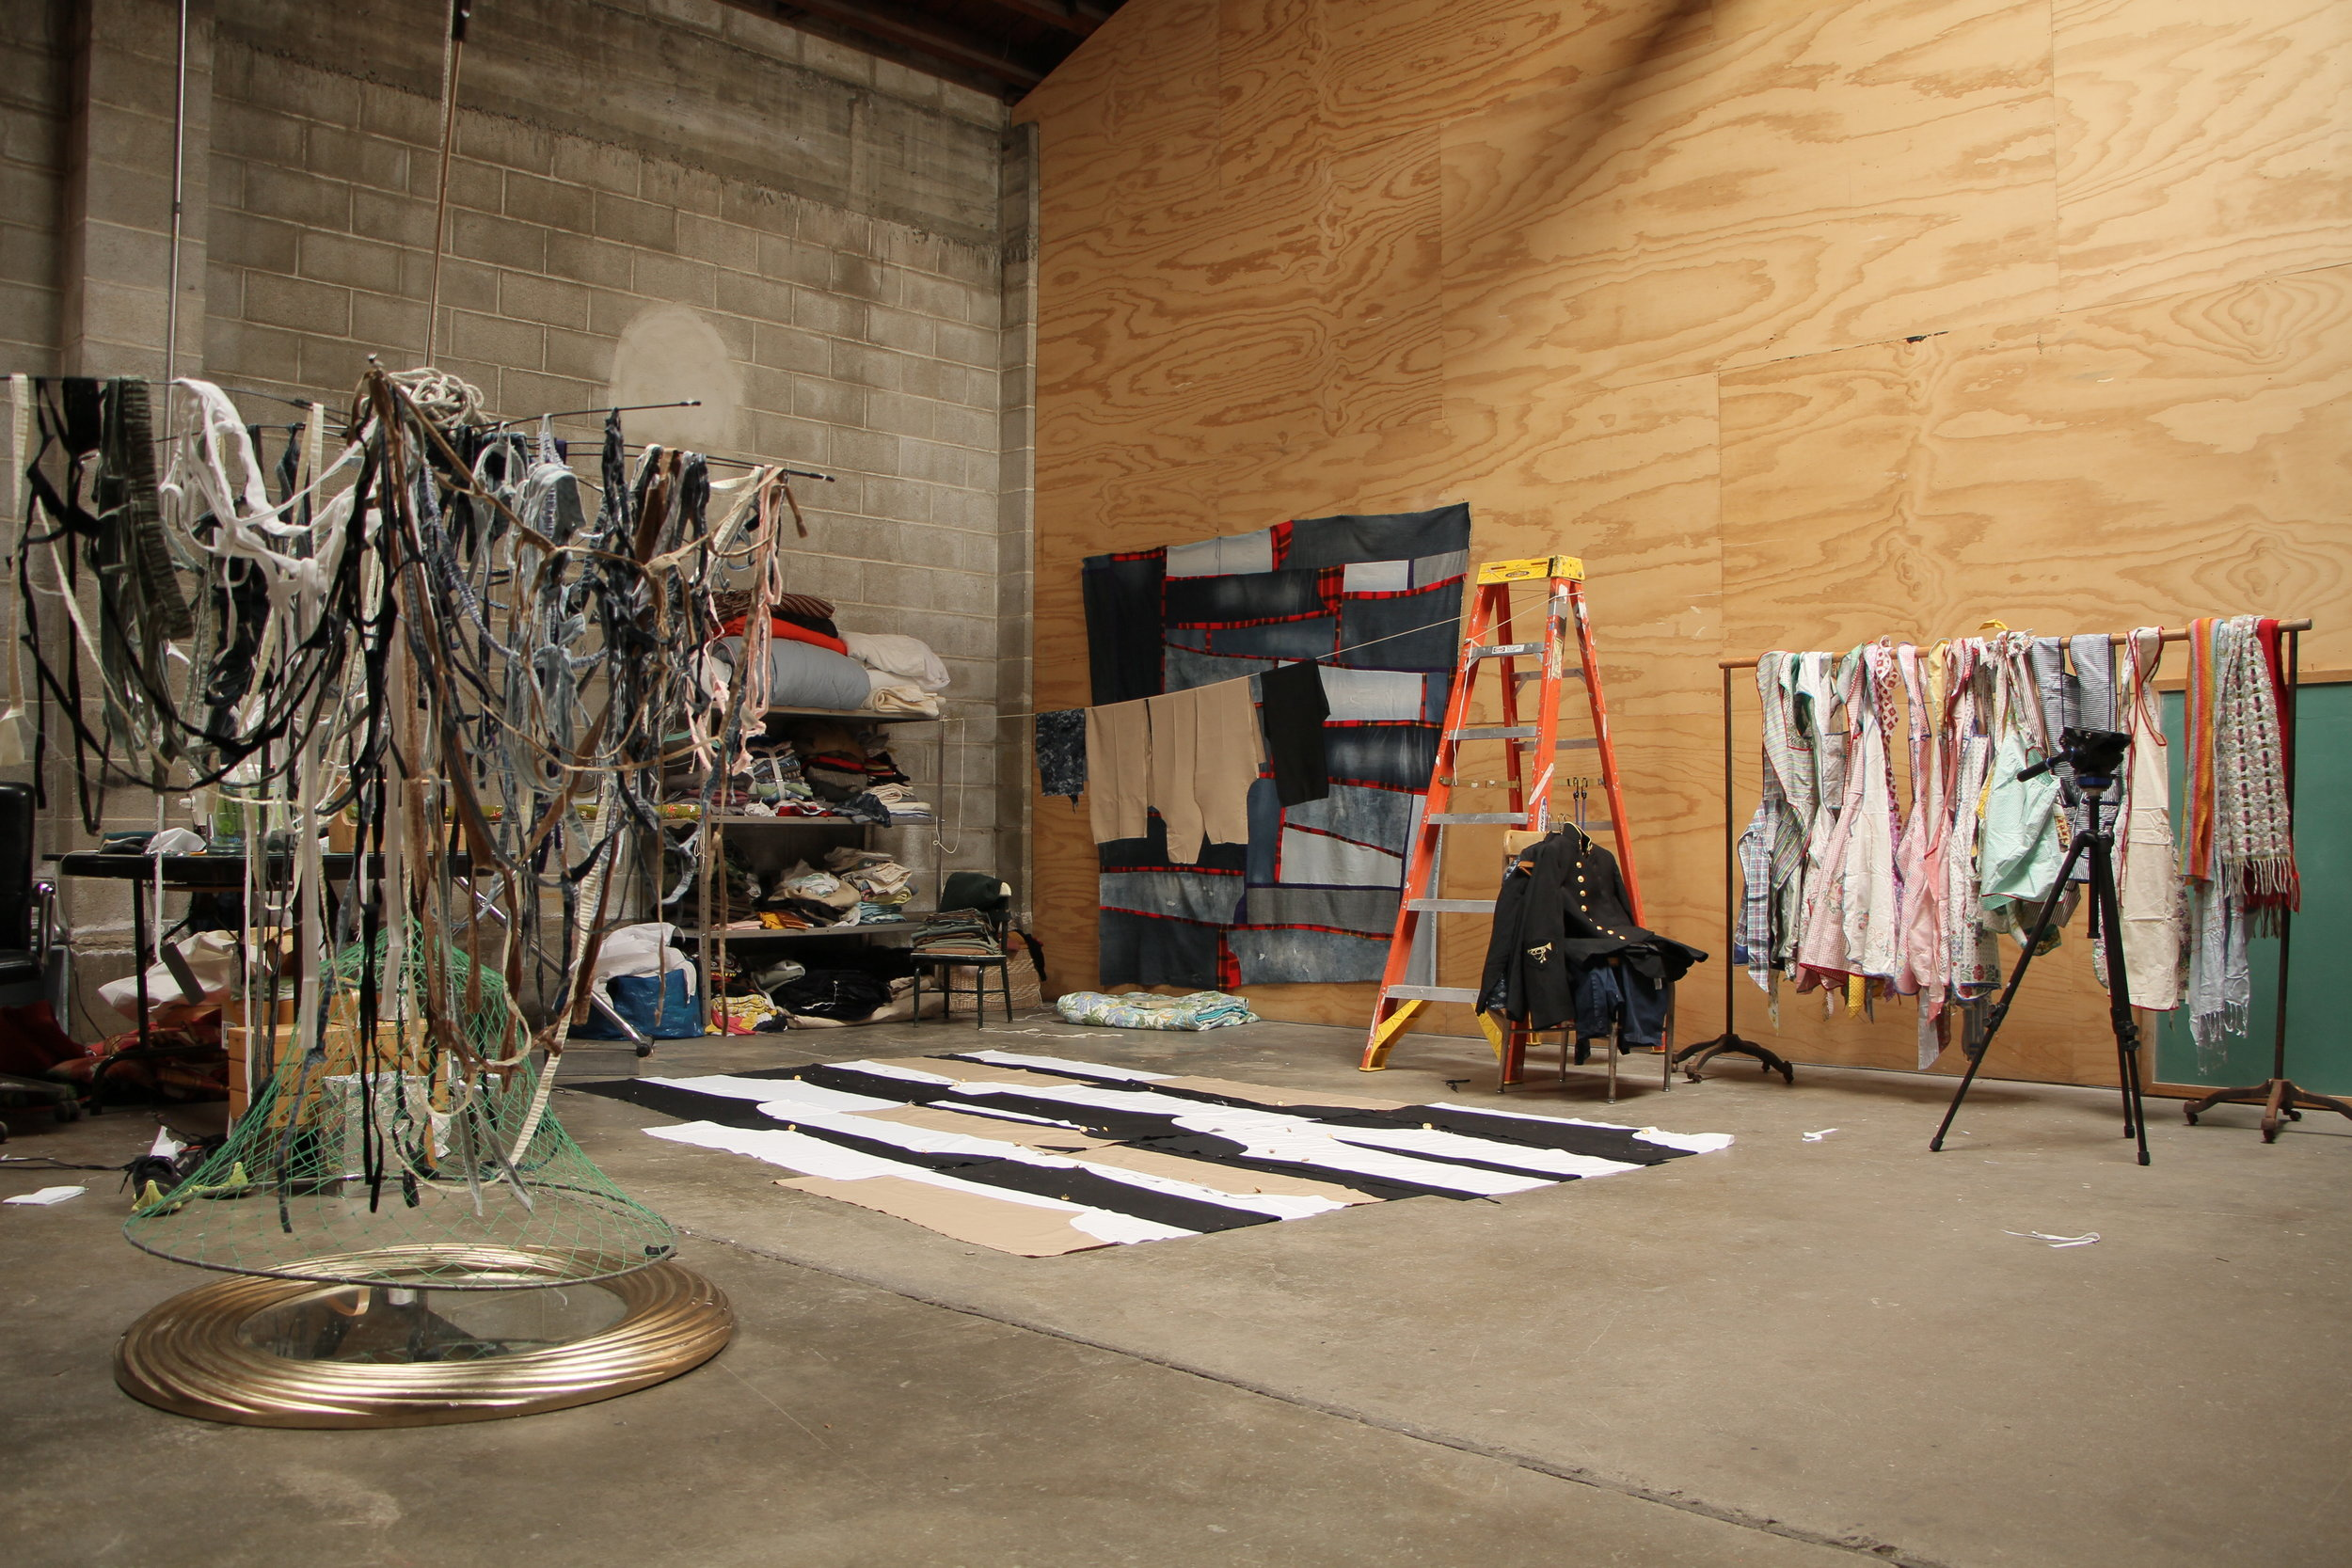 One of the artist in residence studios.